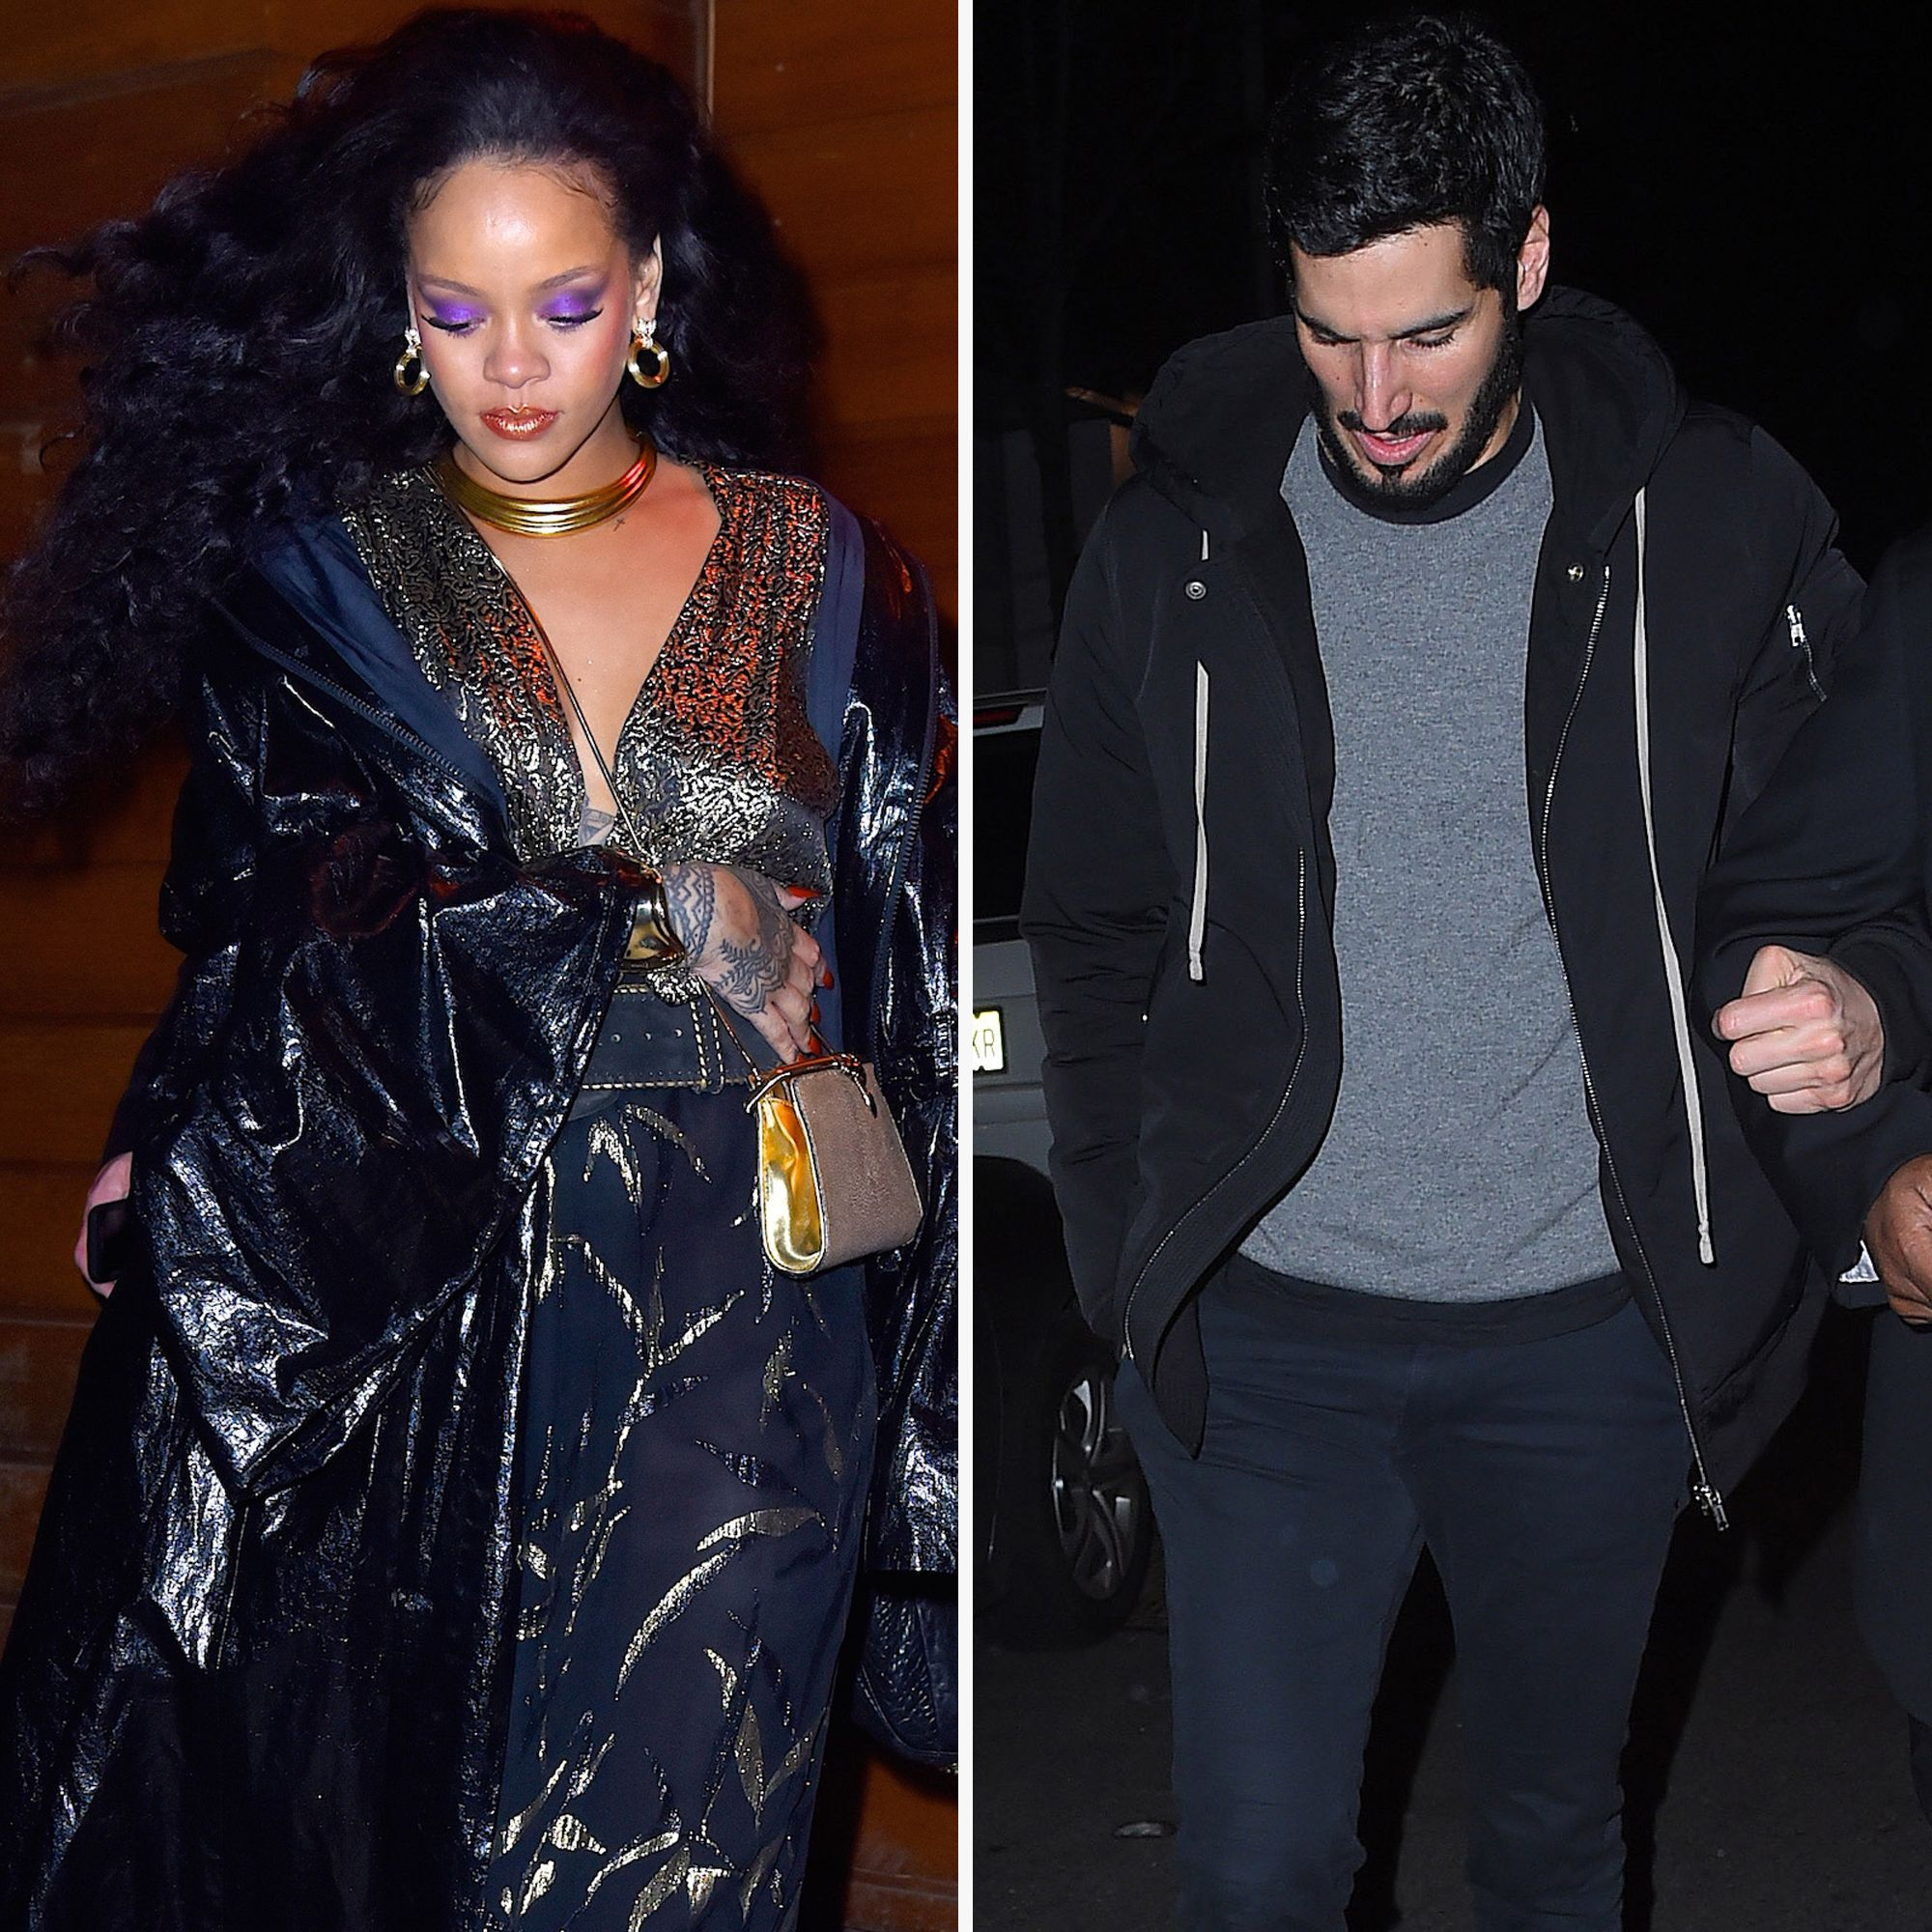 Who is rihanna dating accommodating change